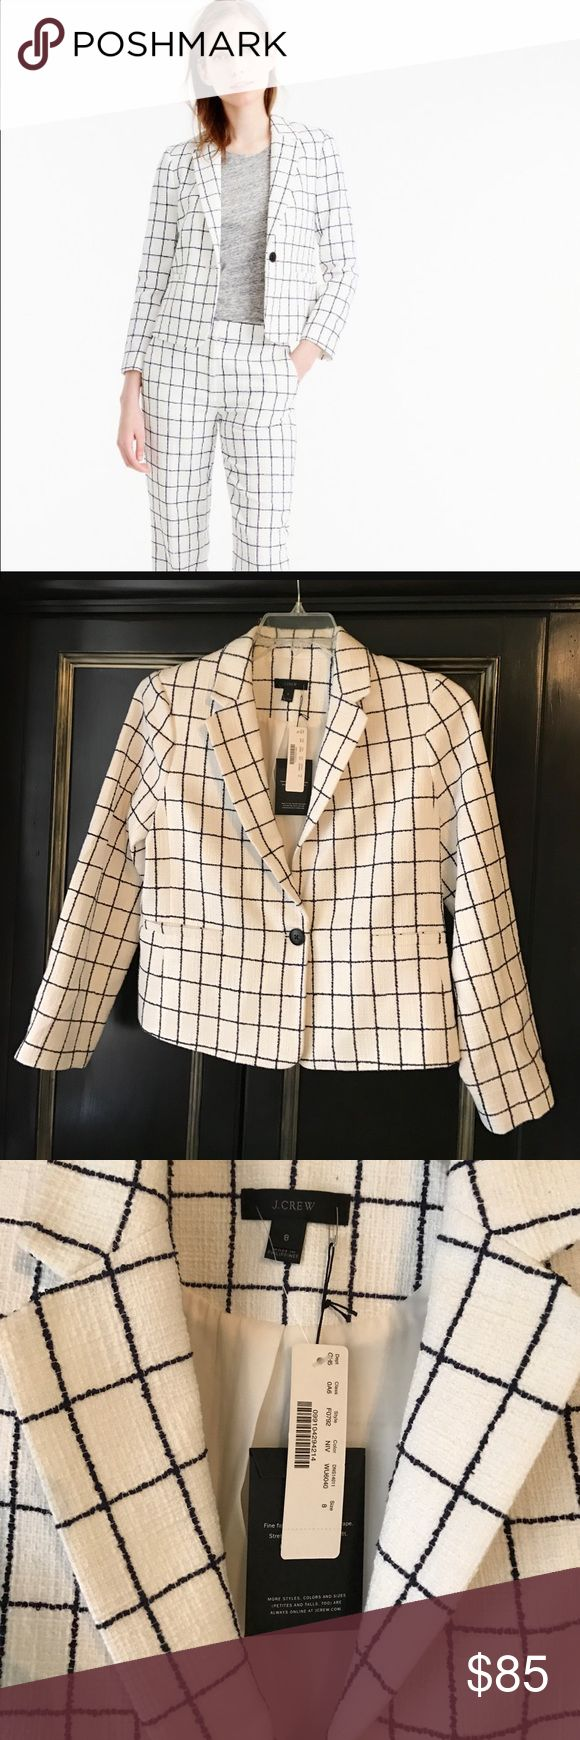 NWT JCrew windowpane tweed blazer jacket sz 8 Sold Out in Stores! This shrunken (meaning perfectly fitted) jacket features a modern windowpane-printed cotton tweed fabric that has the perfect amount of texture. Cotton/poly/viscose. Standing collar. Functional buttons at cuffs. Back vent. Lined. Dry clean. Import. Select stores.Also in petite. Item F0792. J. Crew Jackets & Coats Blazers